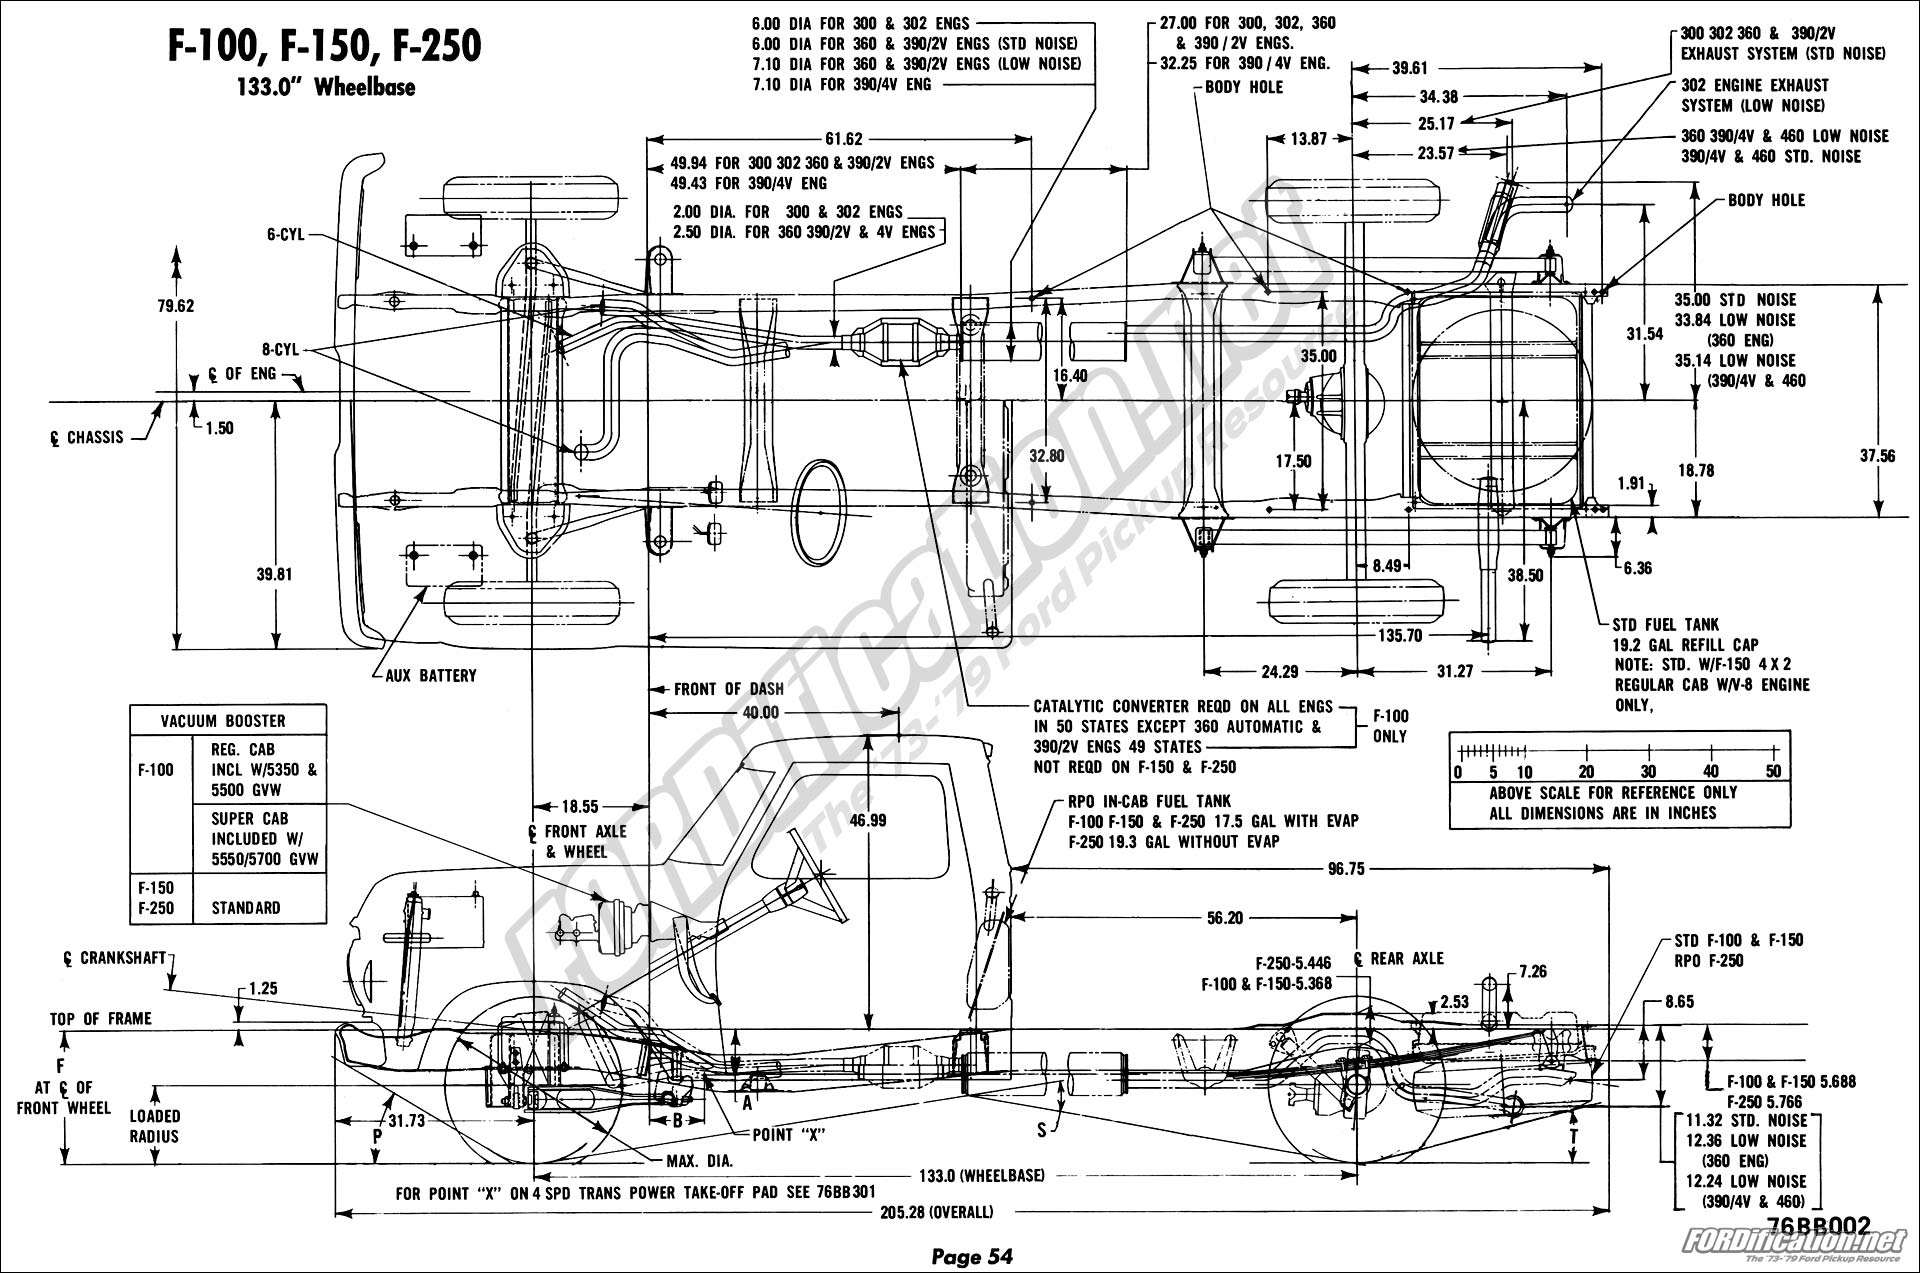 wiring diagrams for 66 mustang with 1333138 Re Building A Wrecked F 150 Bent Frame 5 on Eadd3a2c66dcff3e8e3d18907f7af894 likewise Lotus Elise Buyers Guide further GT65 66 besides 1333138 Re Building A Wrecked F 150 Bent Frame 5 additionally 1968 Mustang Engine Diagram.